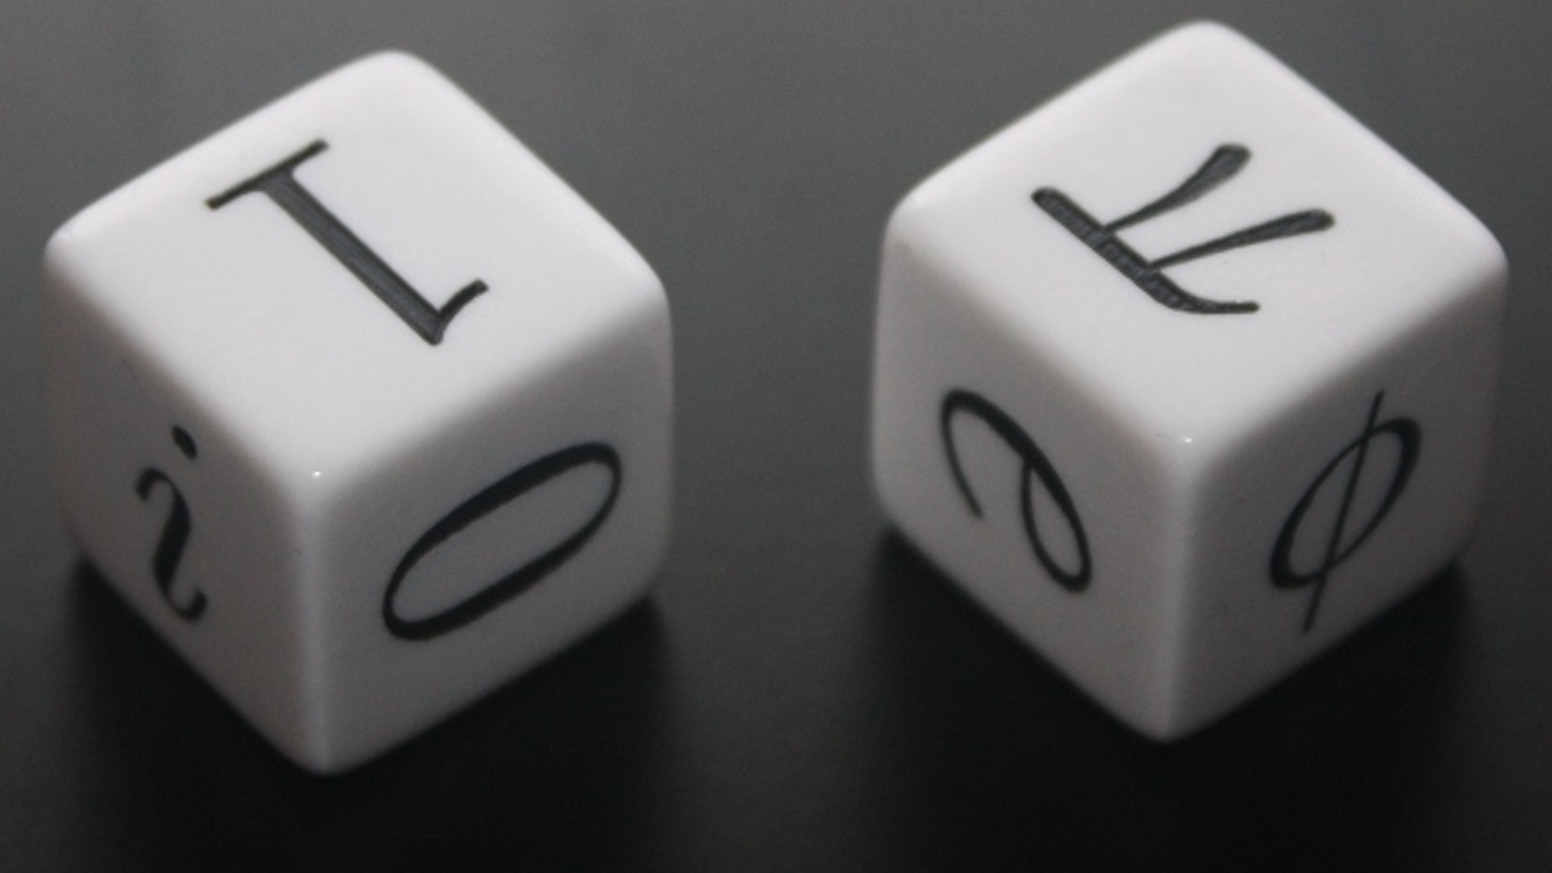 Rather than the boring numbers 1 to 6, these dice have the six most important numbers in mathematics on them — i, 0, 1, φ, e and π!